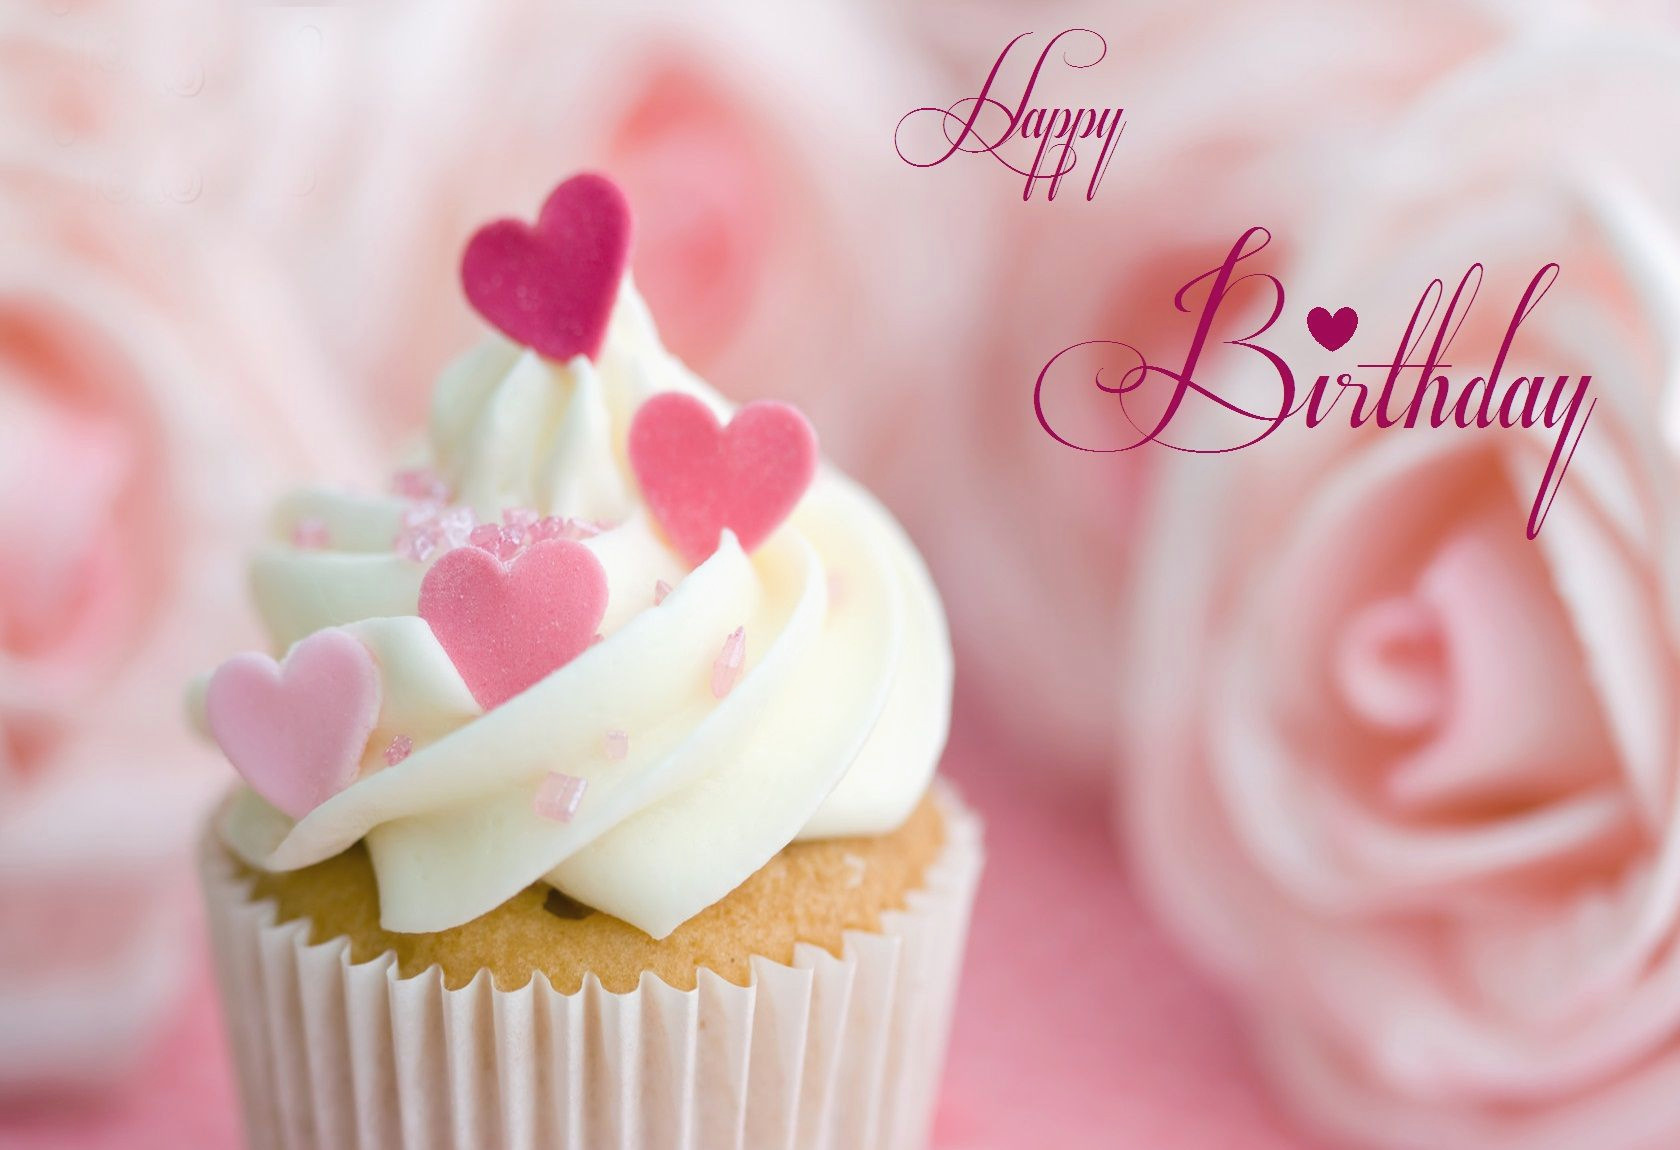 birthday wishes wallpaper ; 24-happy-birthday-wishes-and-cakes-elegant-free-happy-birthday-wallpaper-group-60-of-24-happy-birthday-wishes-and-cakes